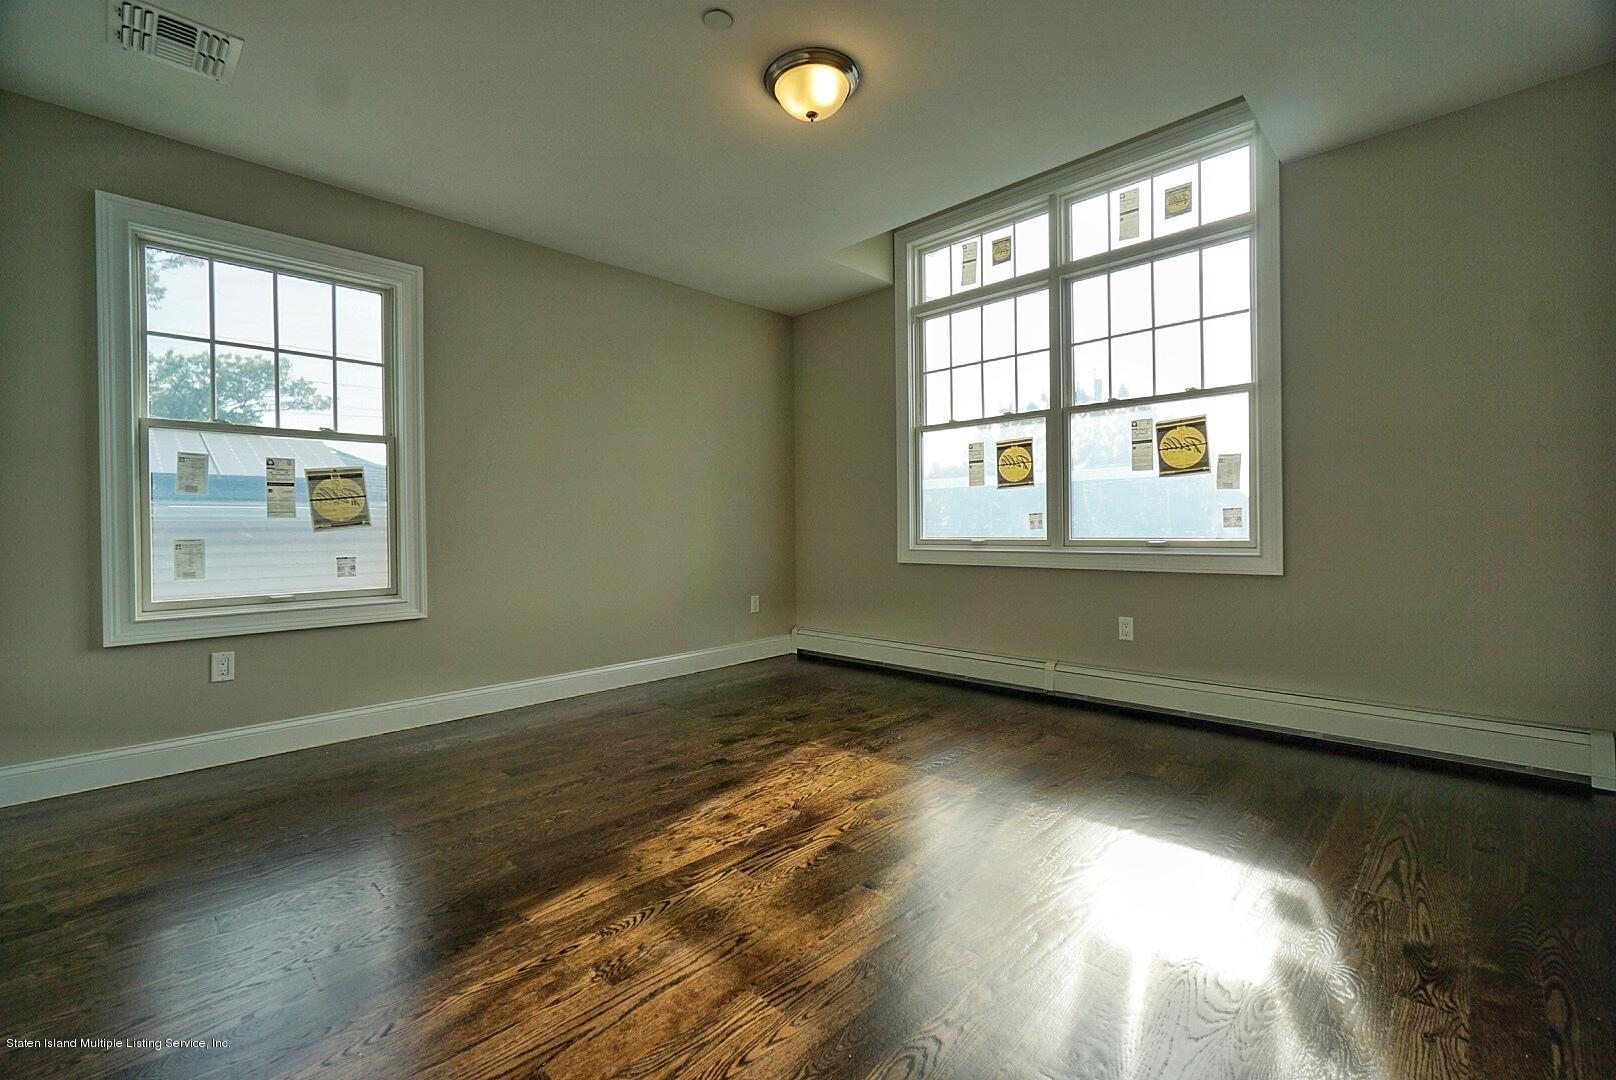 Two Family - Detached 169 Bathgate St   Staten Island, NY 10312, MLS-1122726-23